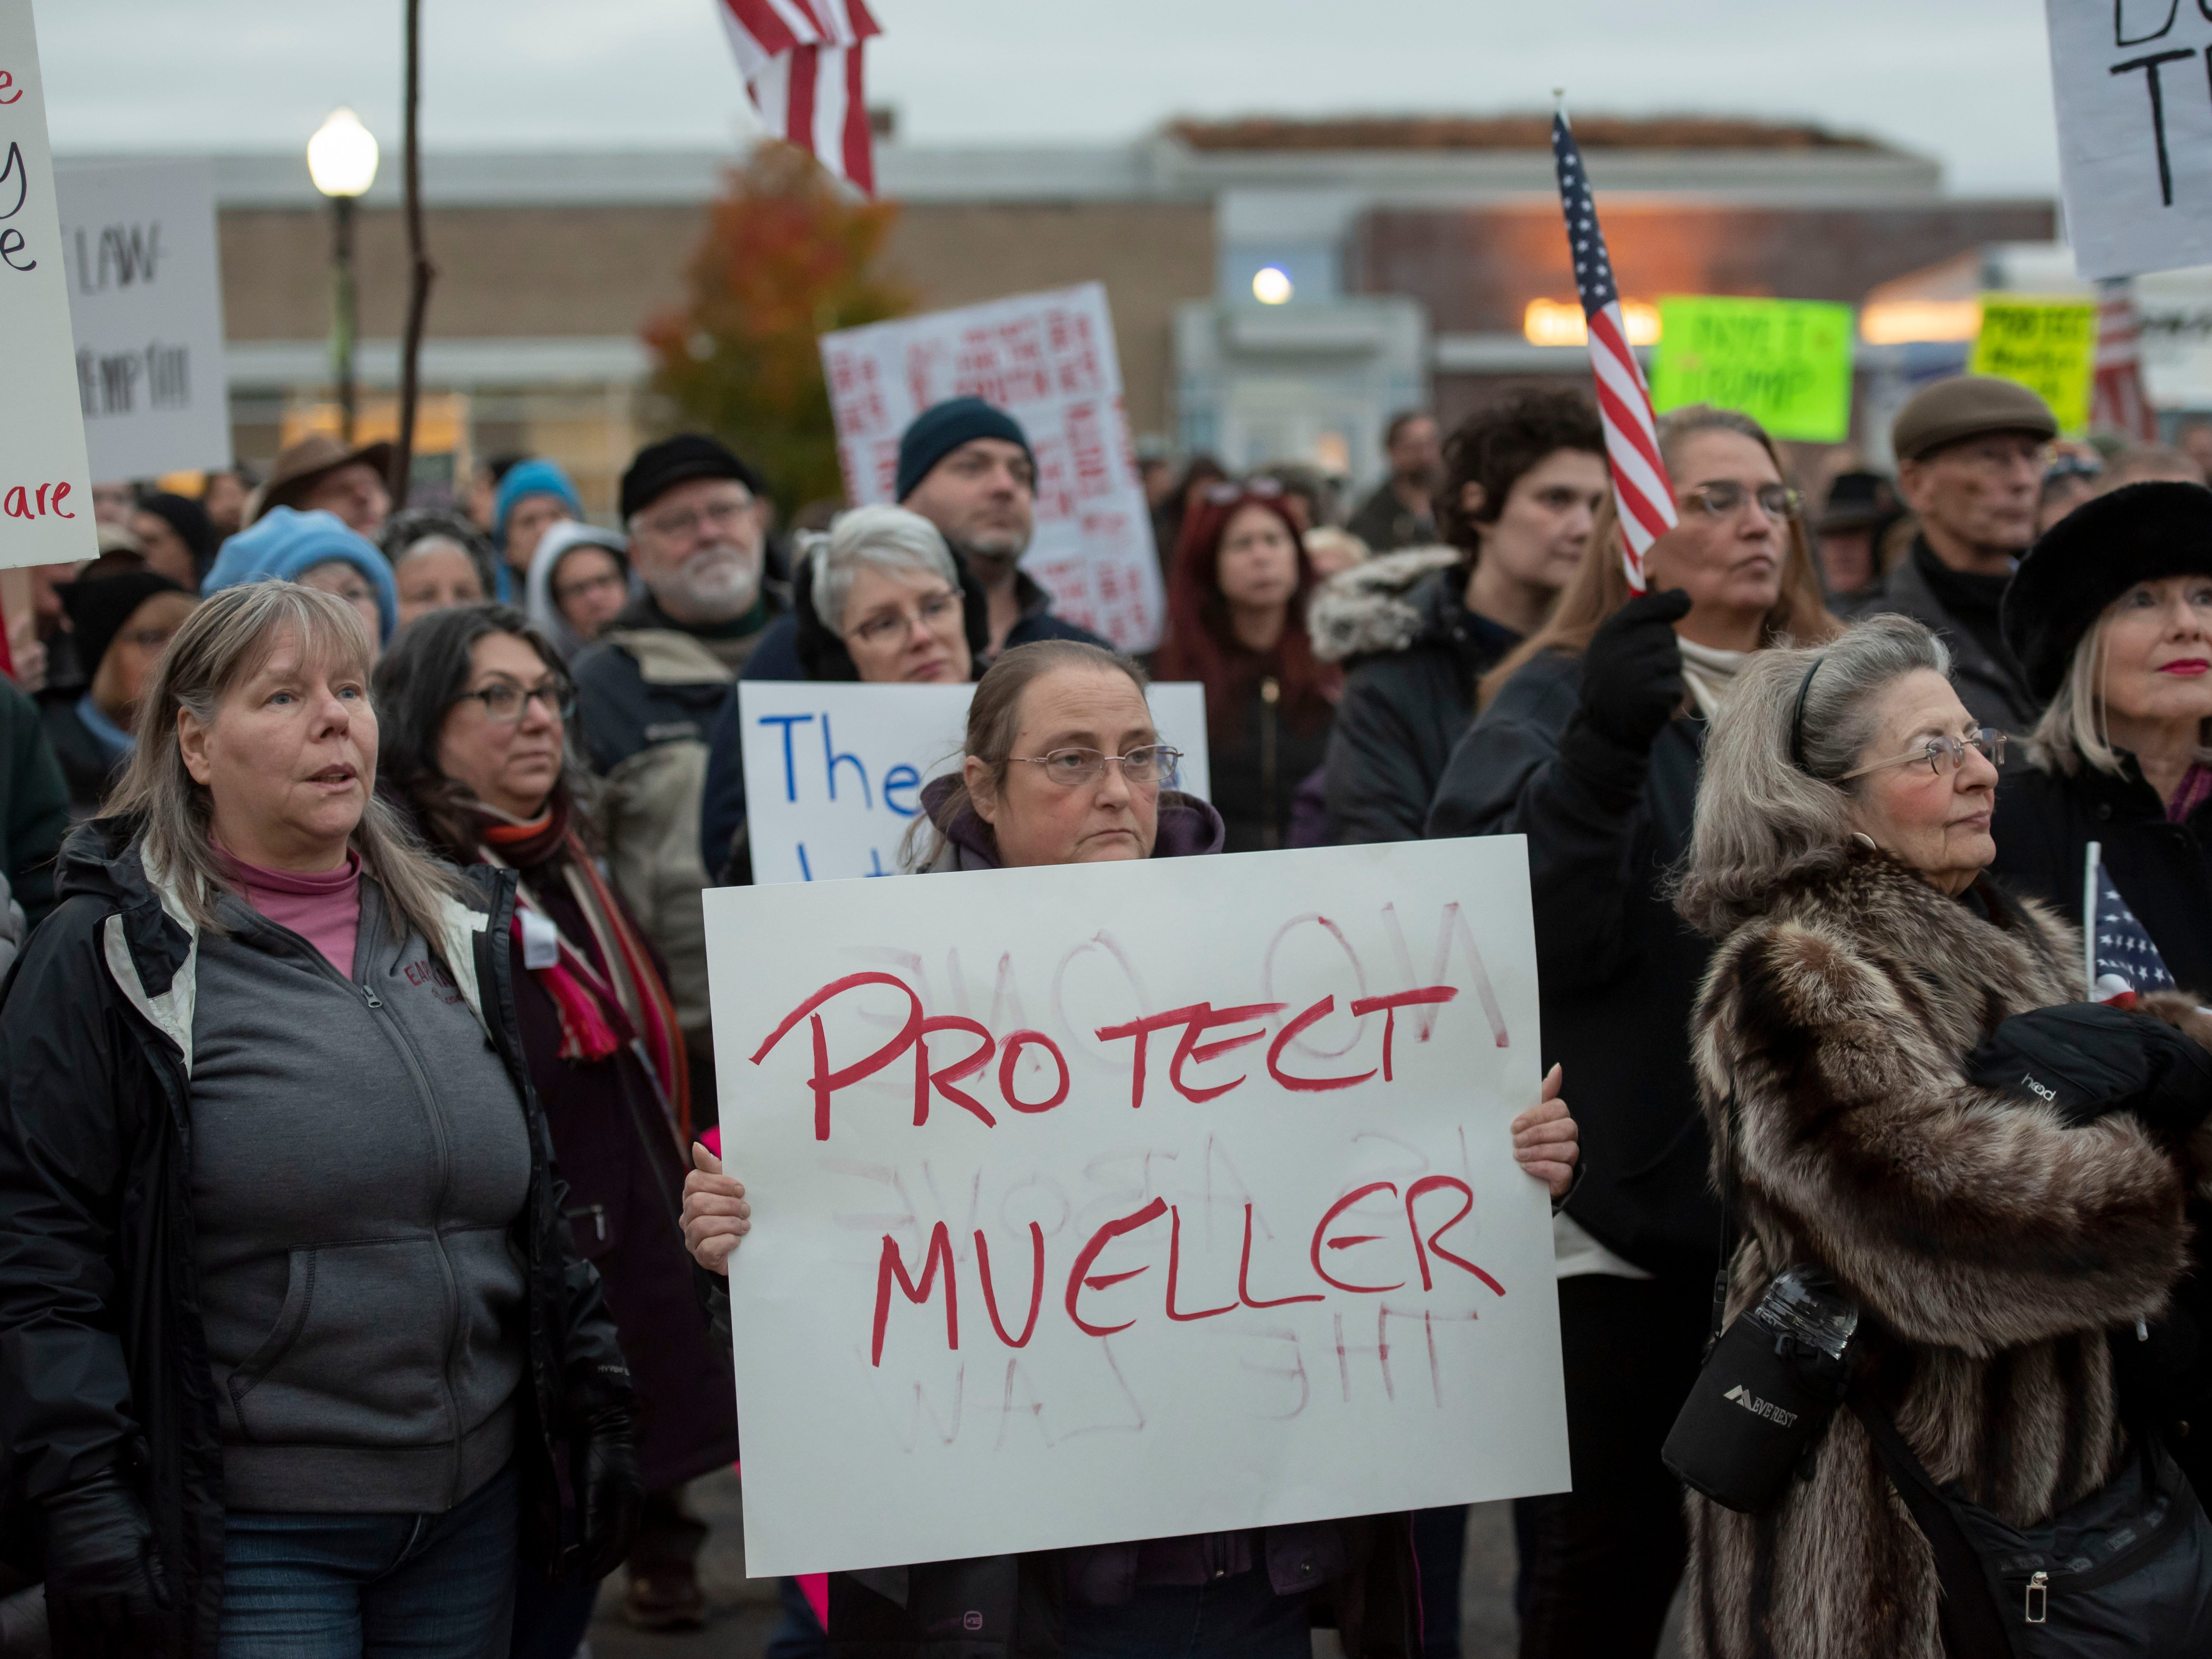 Kelly Kelley of Ferndale holds a sign during a protest at Ferndale City Hall to demand that Special Counsel Robert Mueller's investigation be protected.